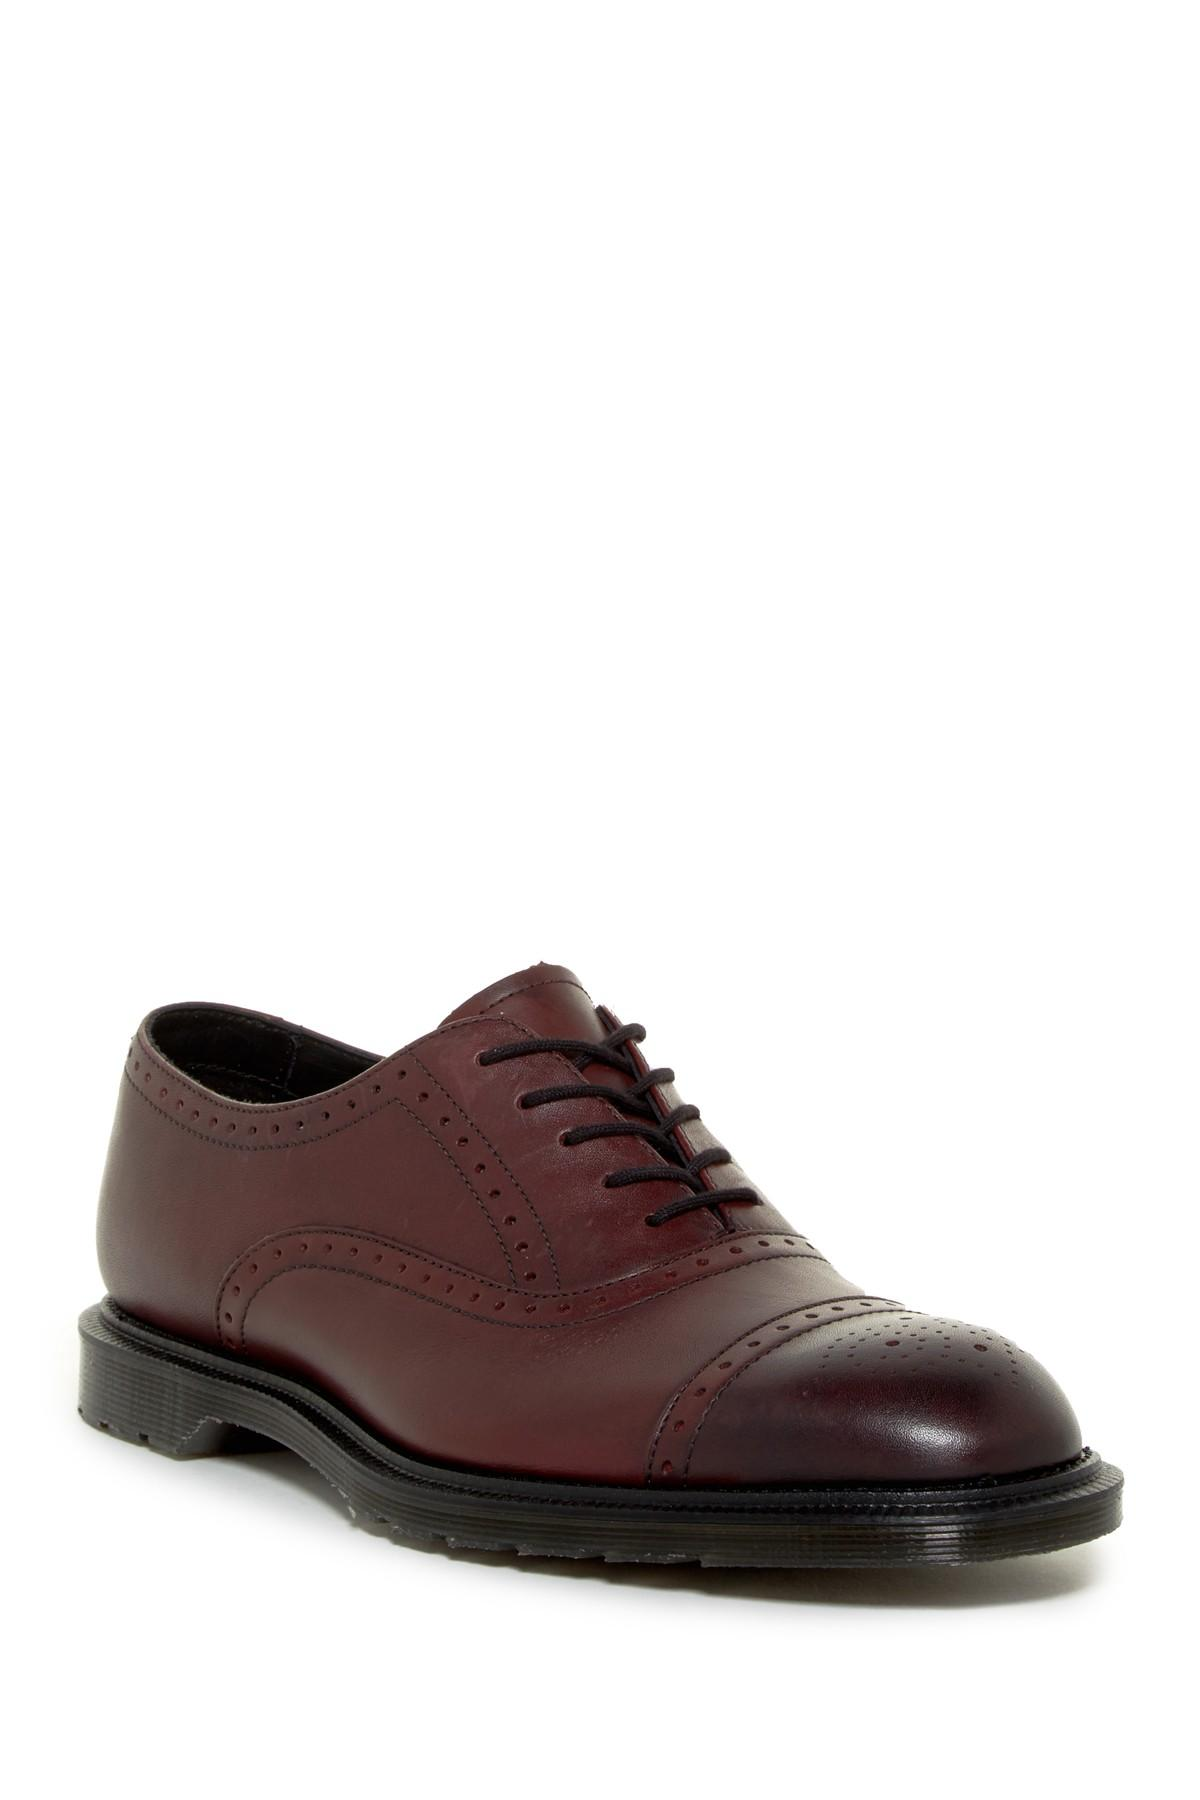 Red Cherry Round Toe Shoes Images